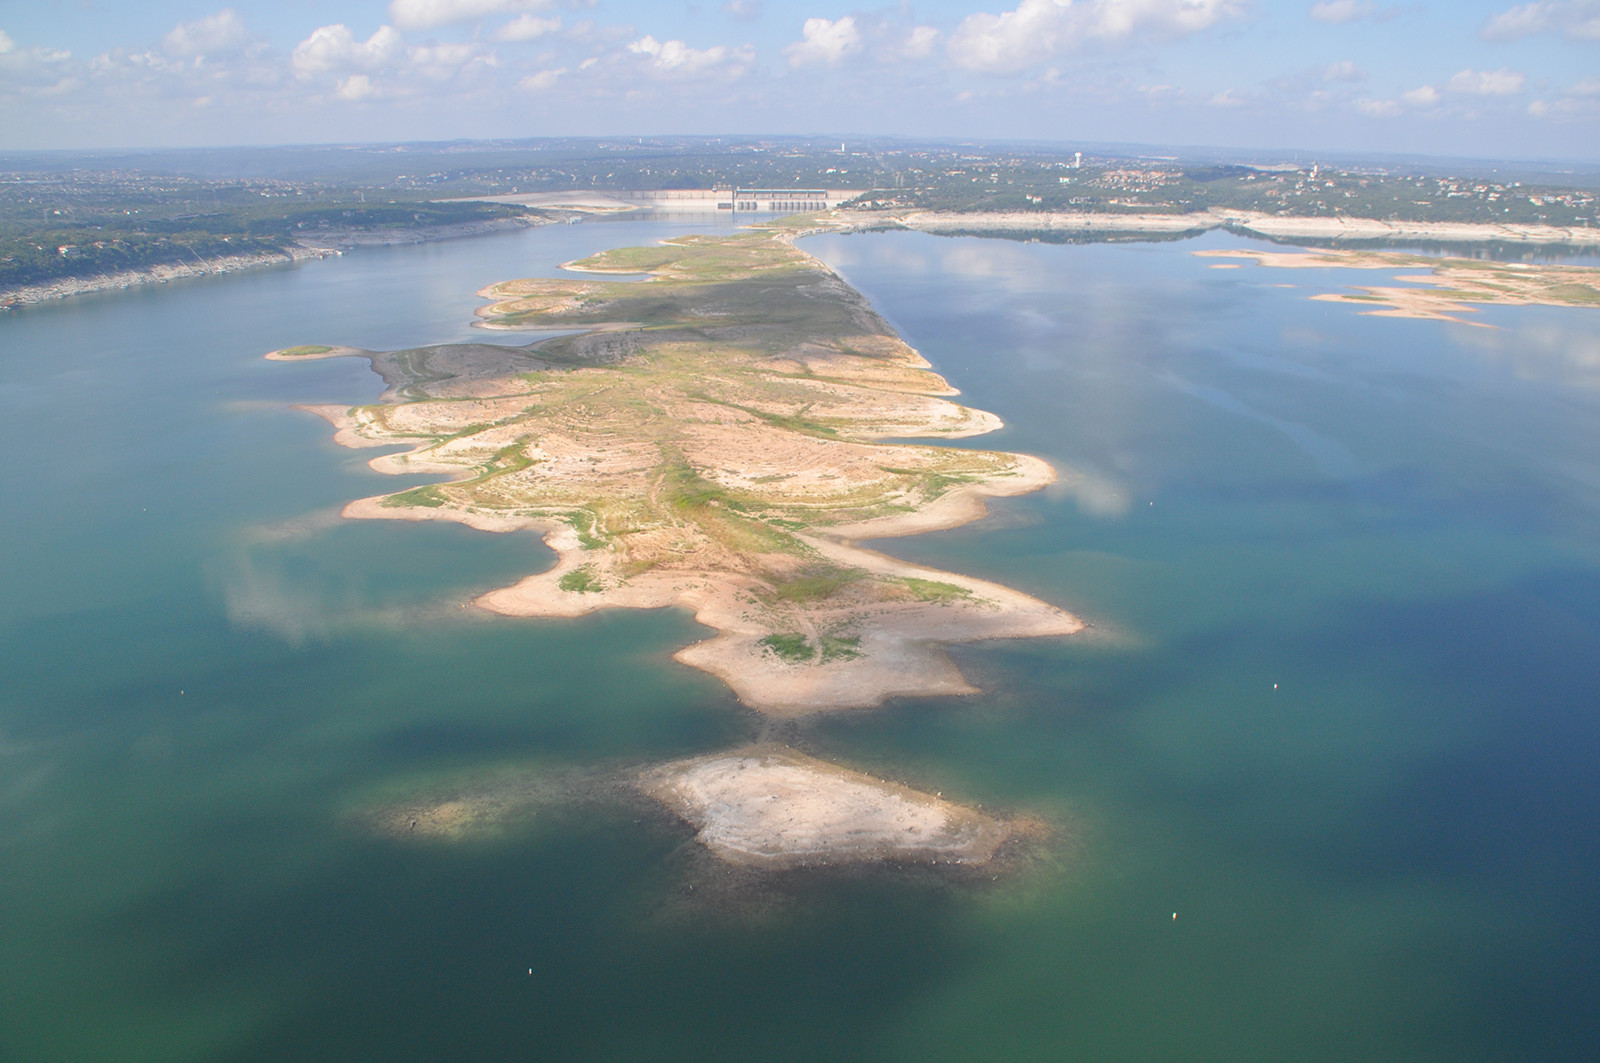 MARCH 2013: These aerial photographs of the Great Basin and Sometimes Islands of Lake Travis show the effects of the drought in Central Texas from March 2013 versus the much fuller lake in March 2016. The lake was 35 percent full in 2013, and the lake today is now 92 percent full; a difference of about 50 feet.